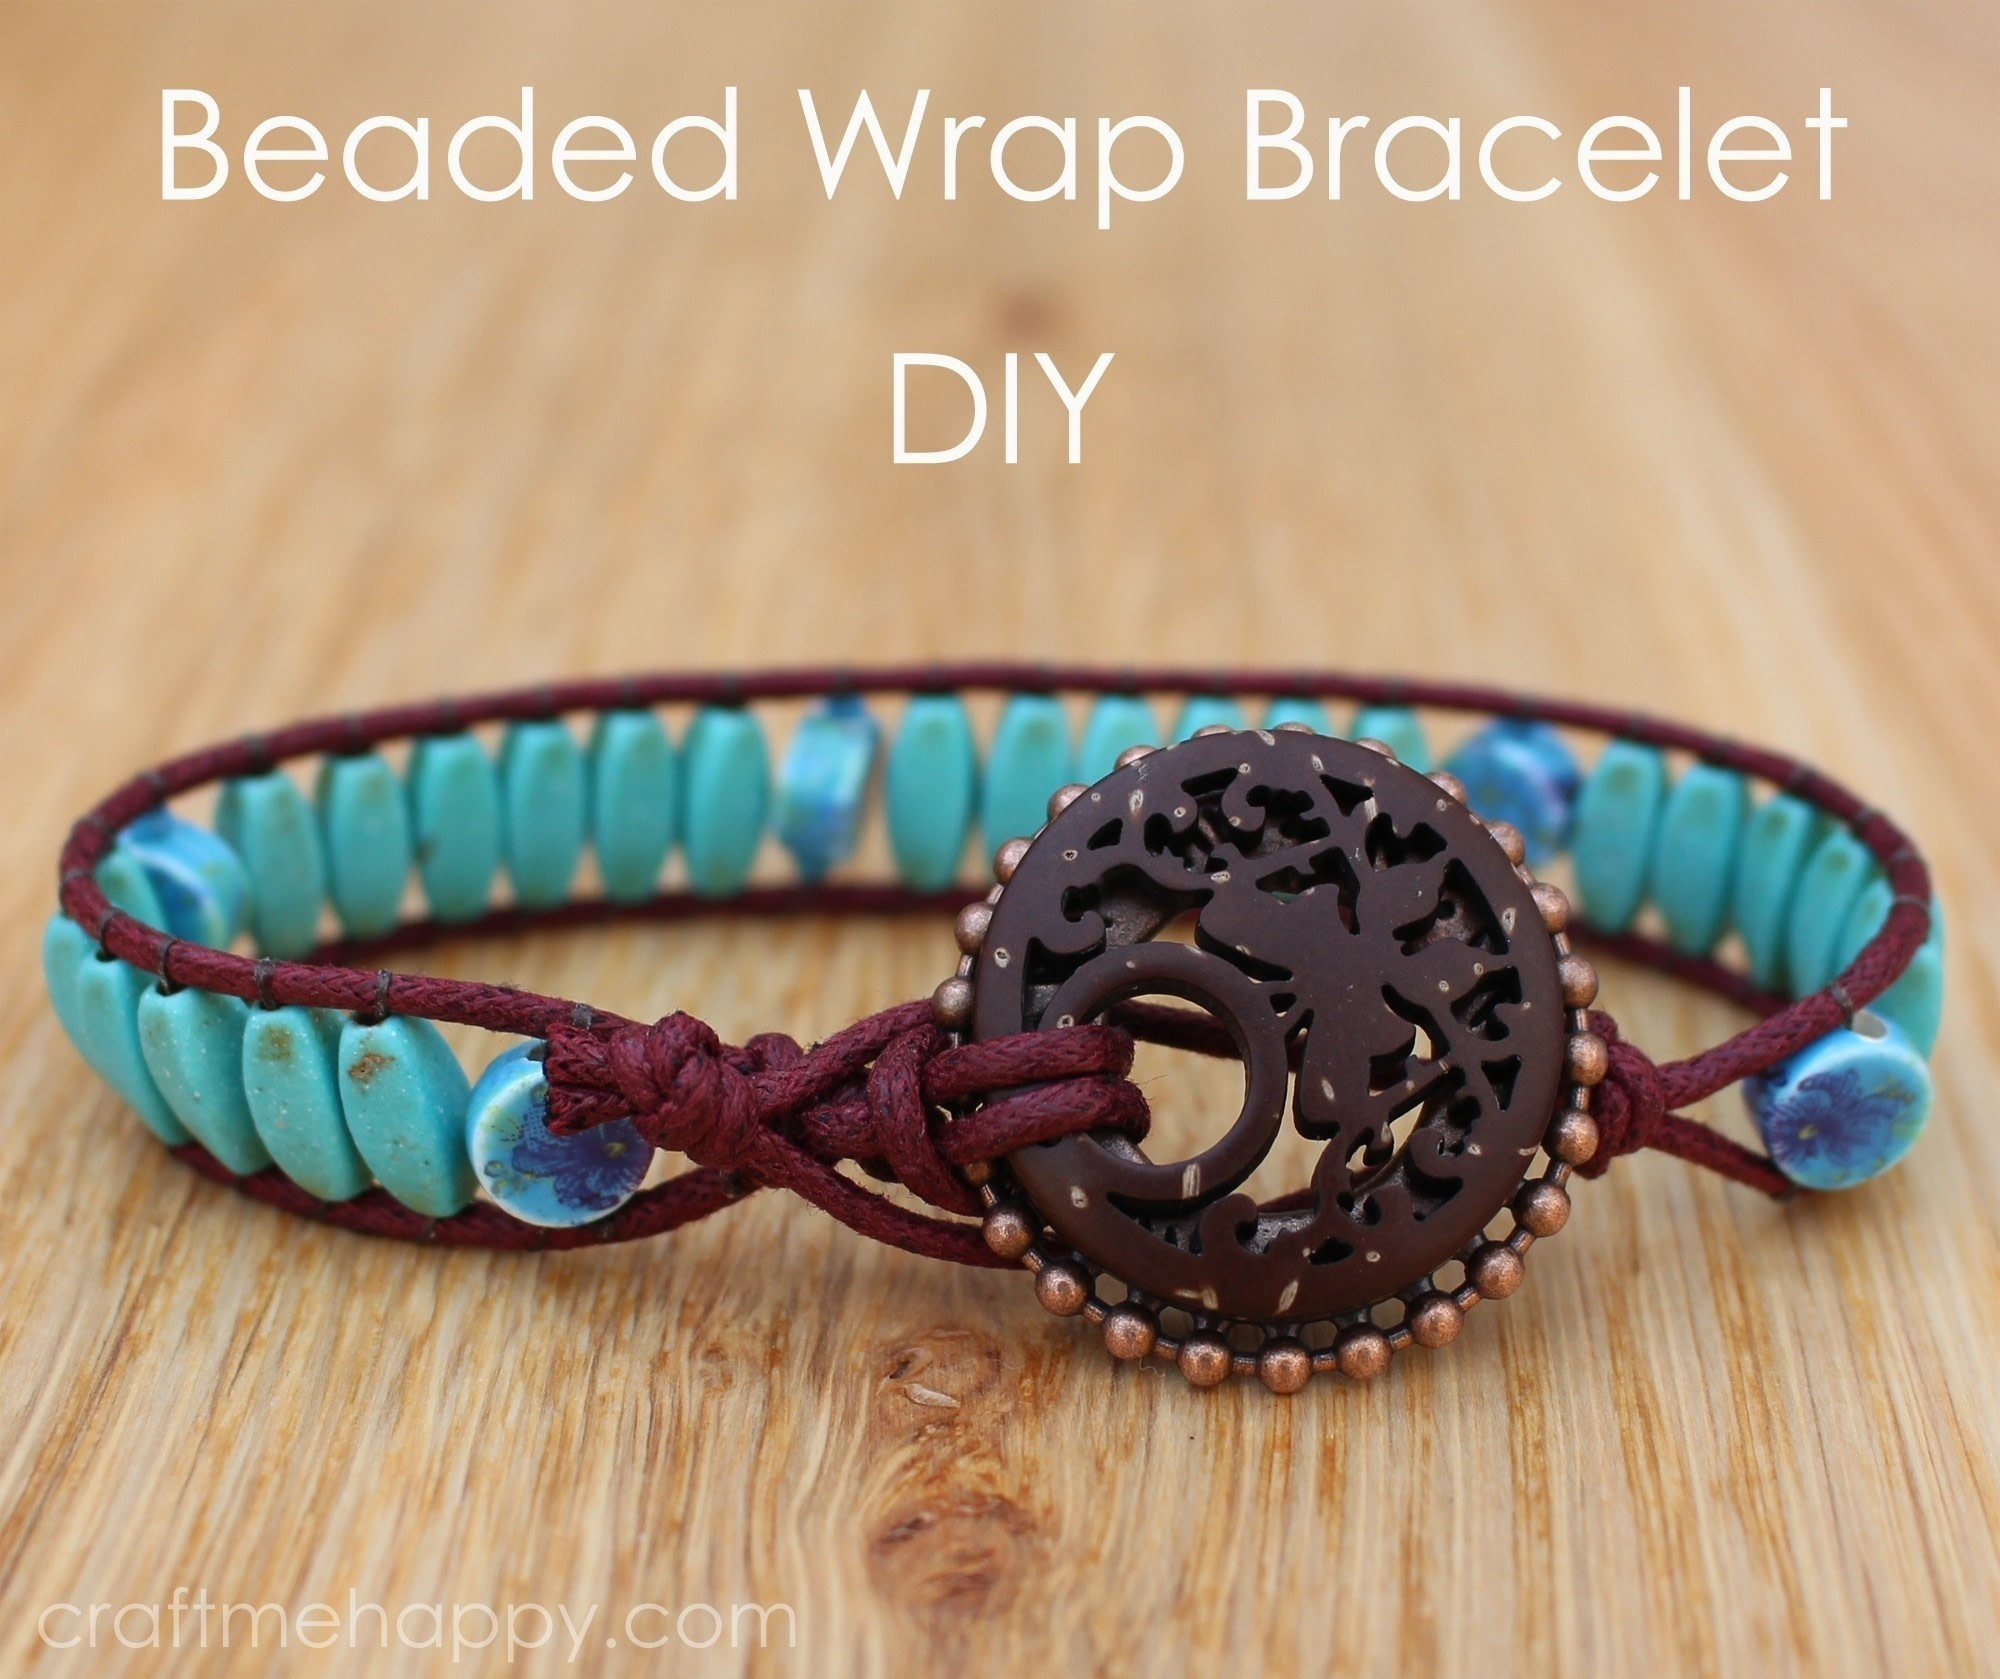 Watch How to Make Beaded Bracelets video